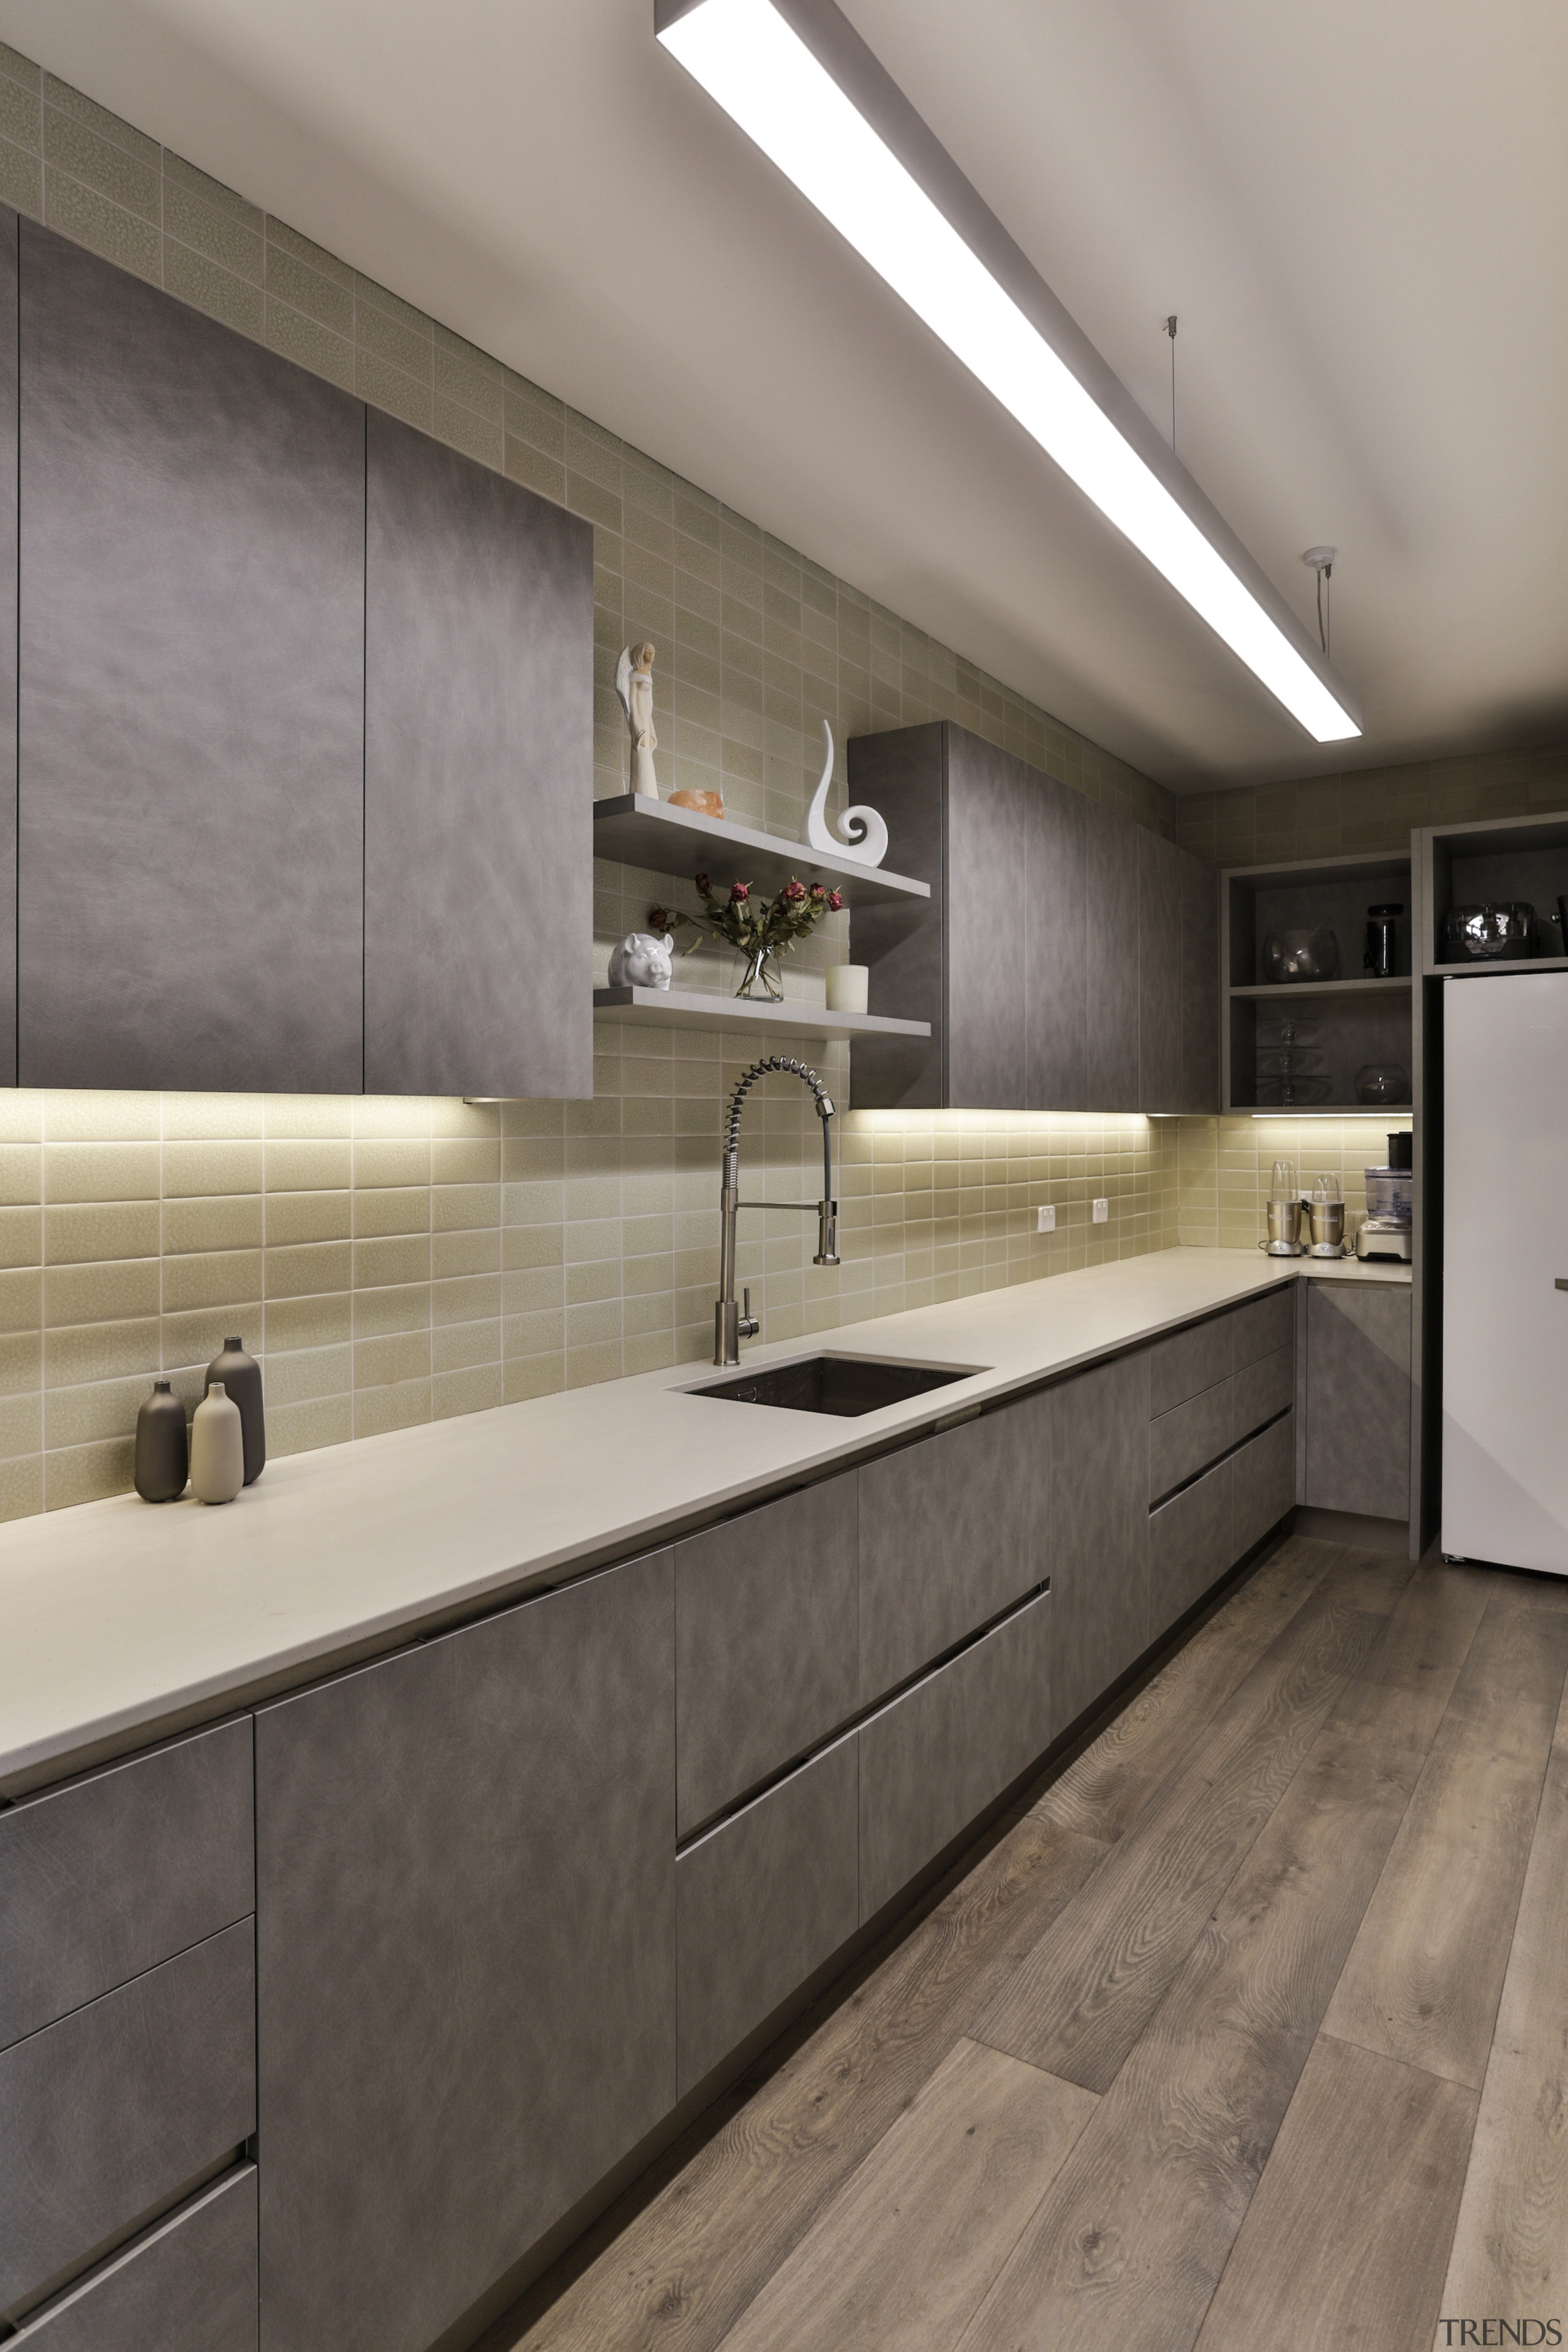 Handless cabinetry above the benchtop and niche handled